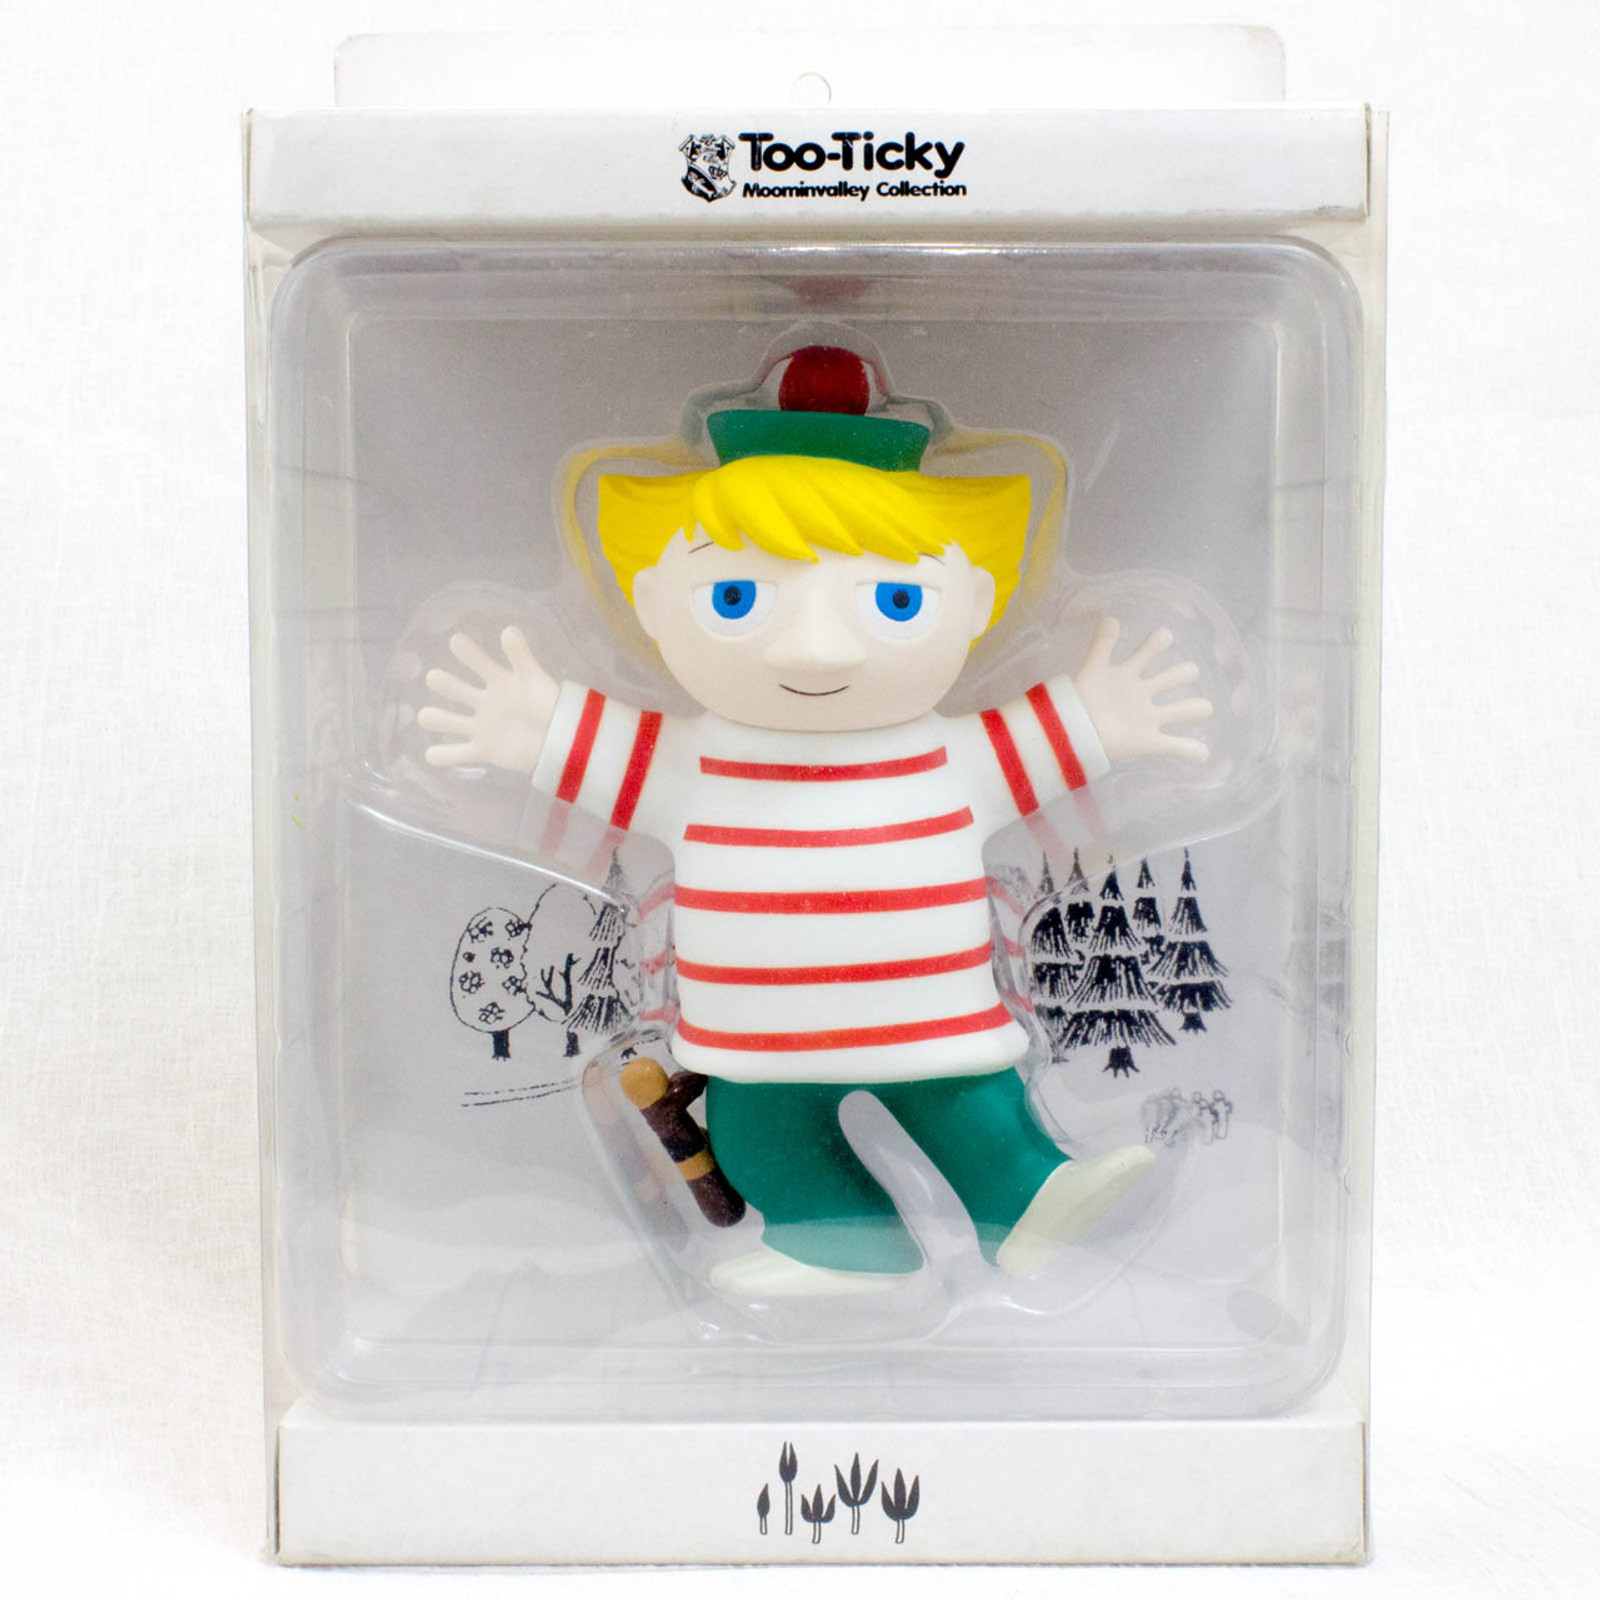 Too Ticky PVC Figure Moomin Valley Collection Sekiguchi STOC JAPAN